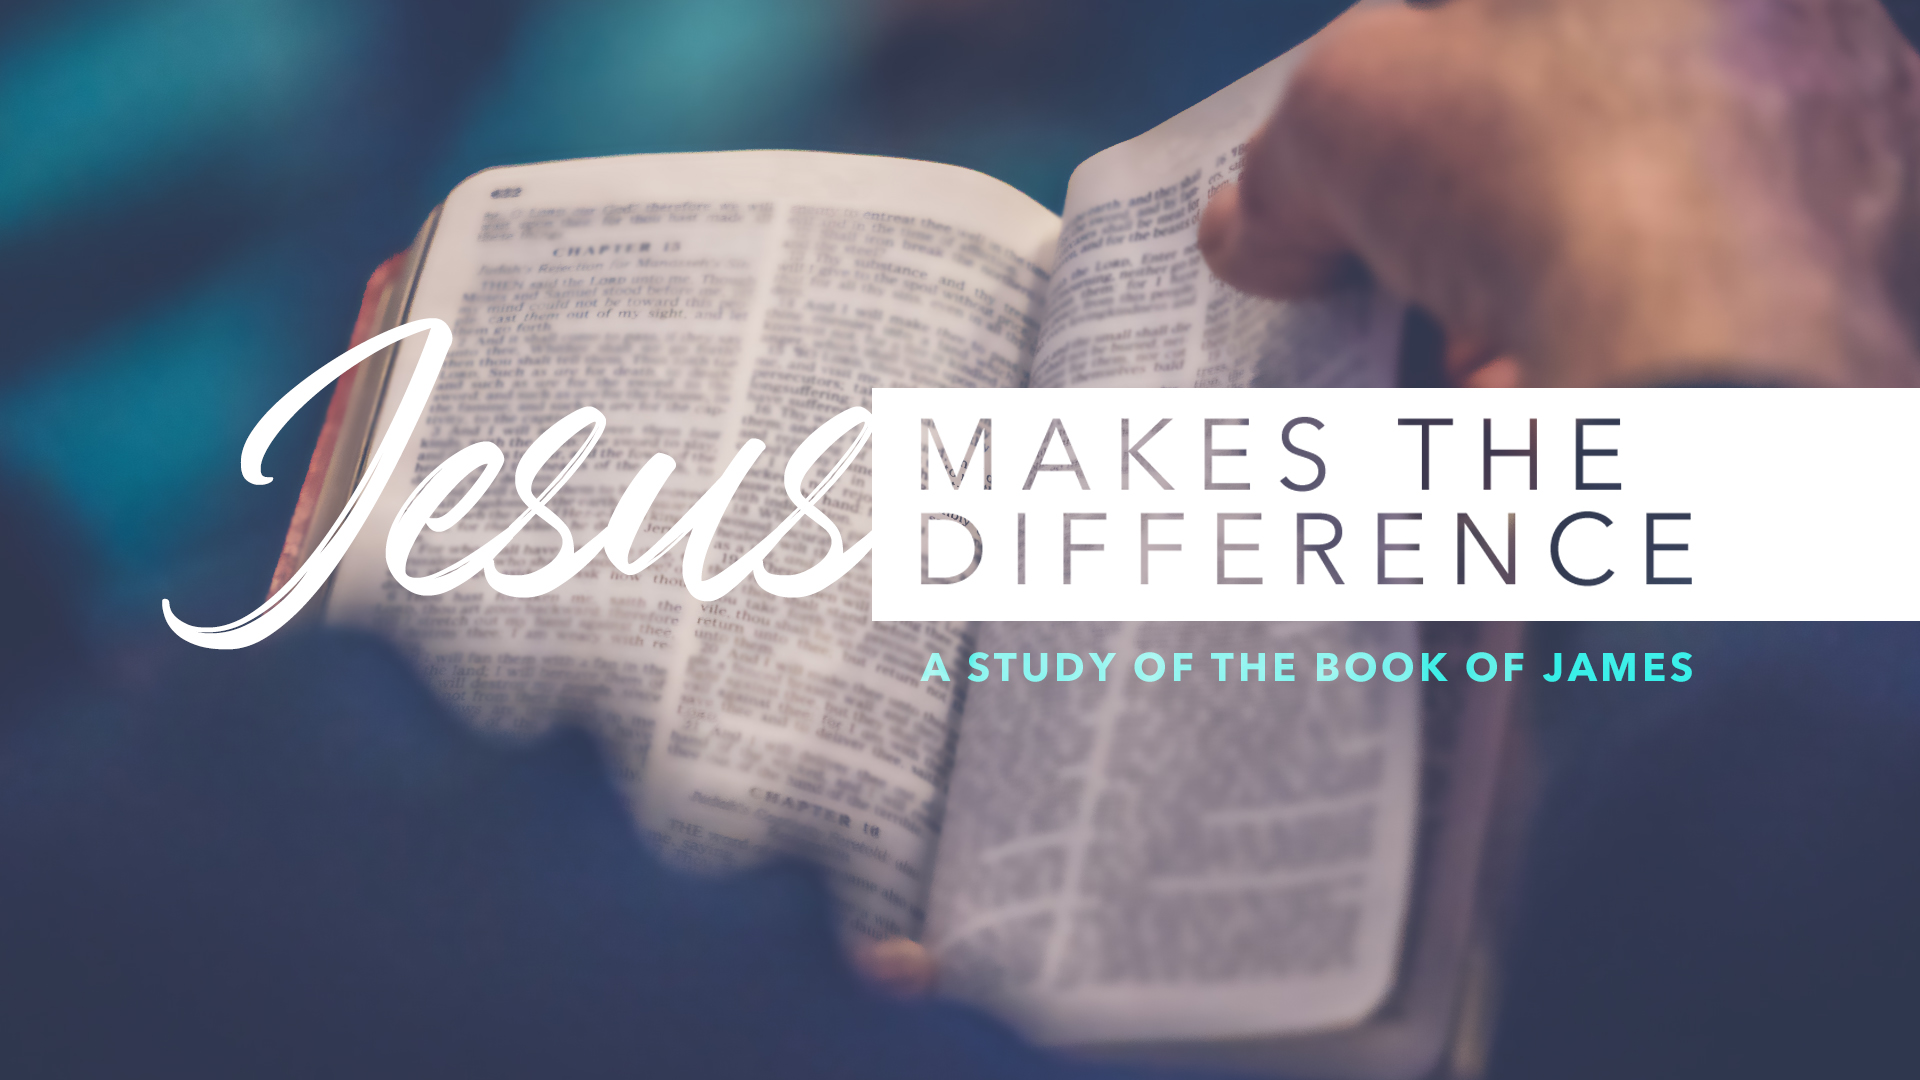 How I Relate to Trials - Jesus Makes the Difference